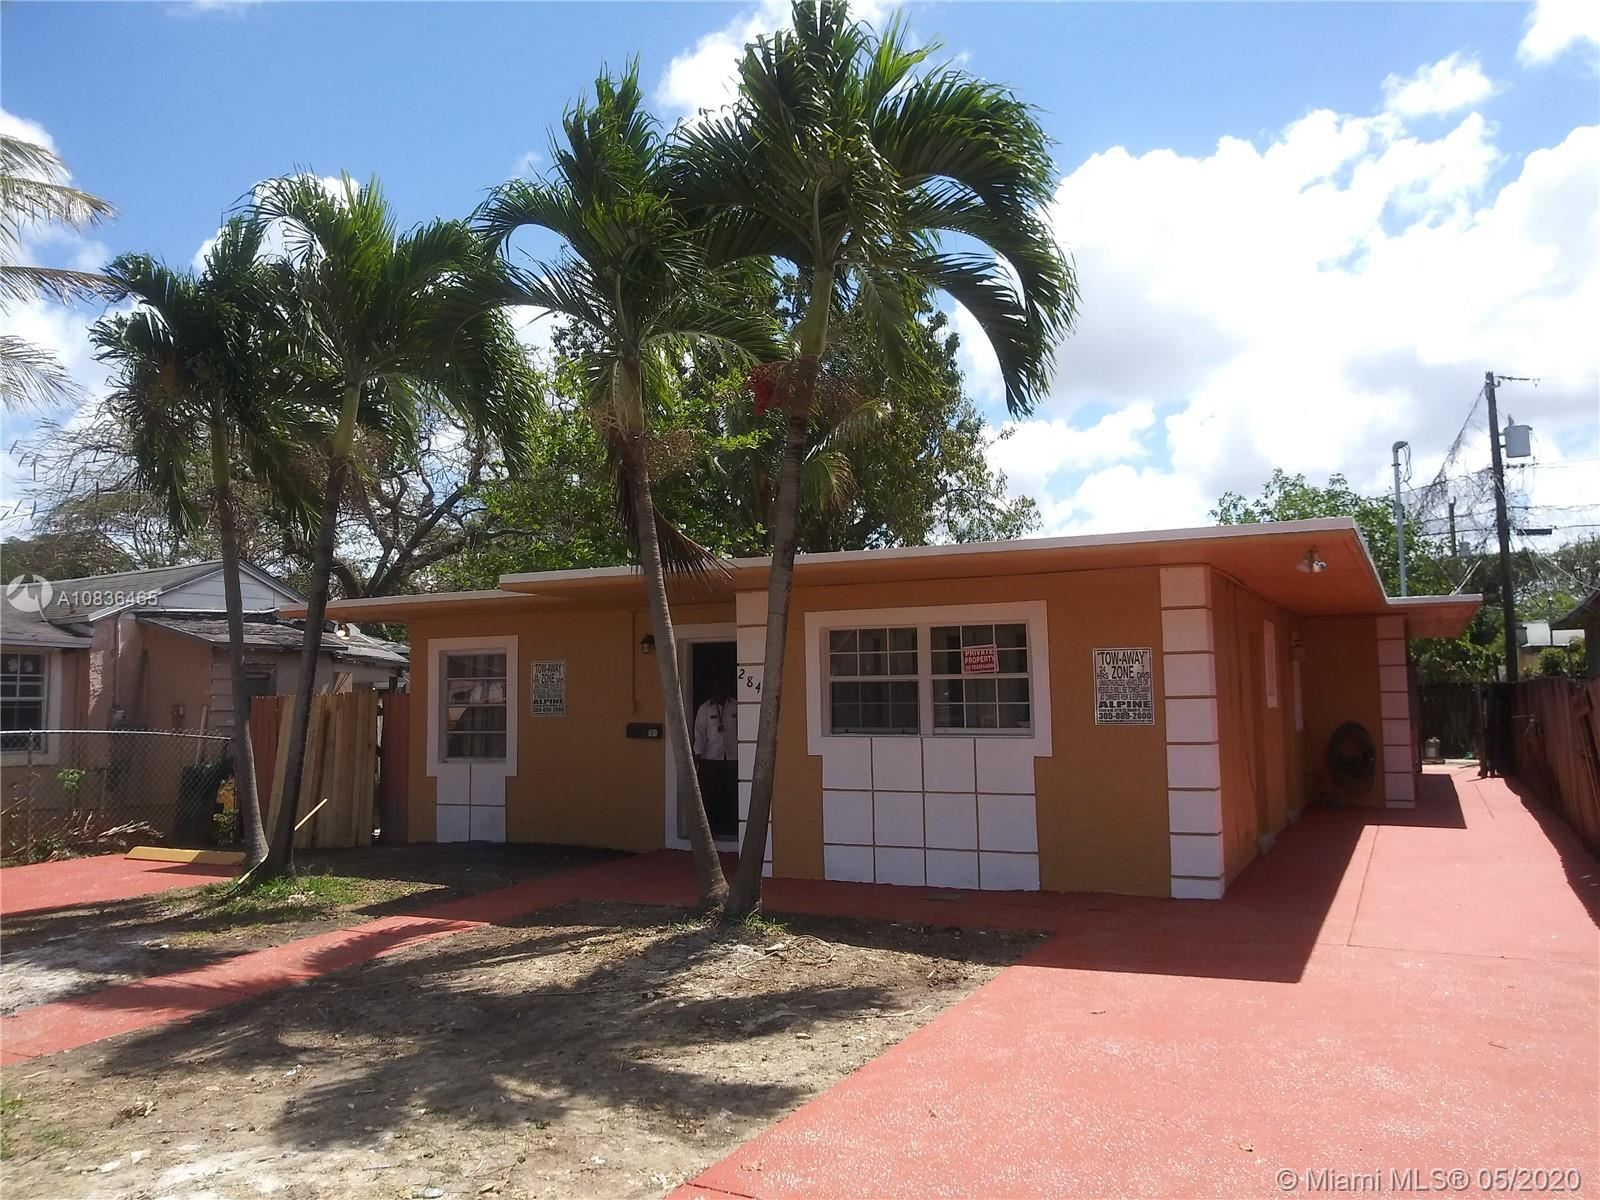 284 NW 82nd St, Miami, FL 33150 - #: A10836465